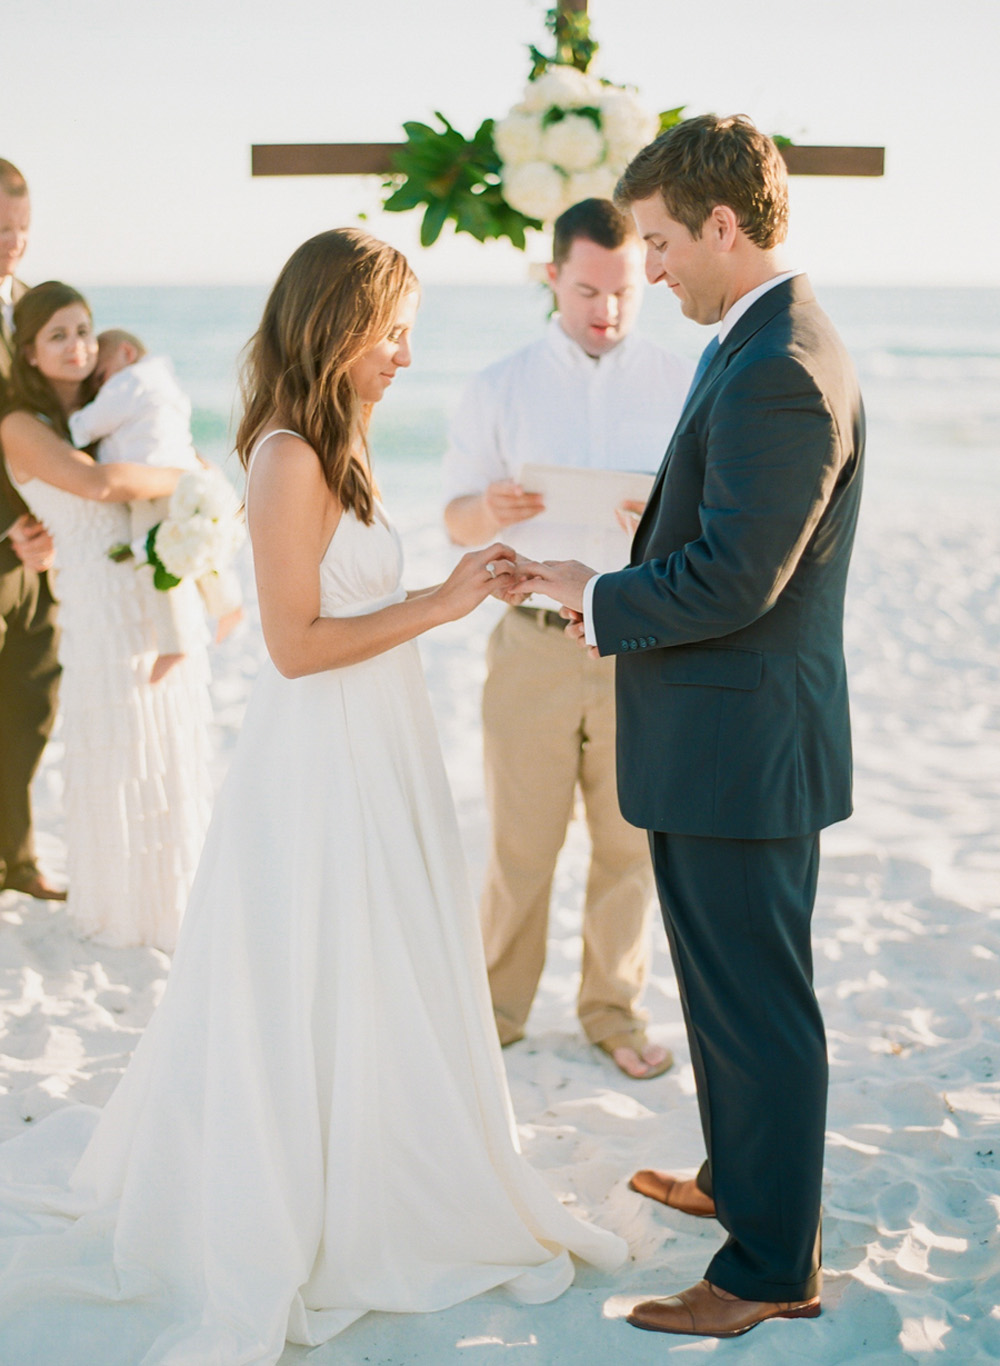 gulf_coast_destination_wedding_photographer_fine_art.jpg